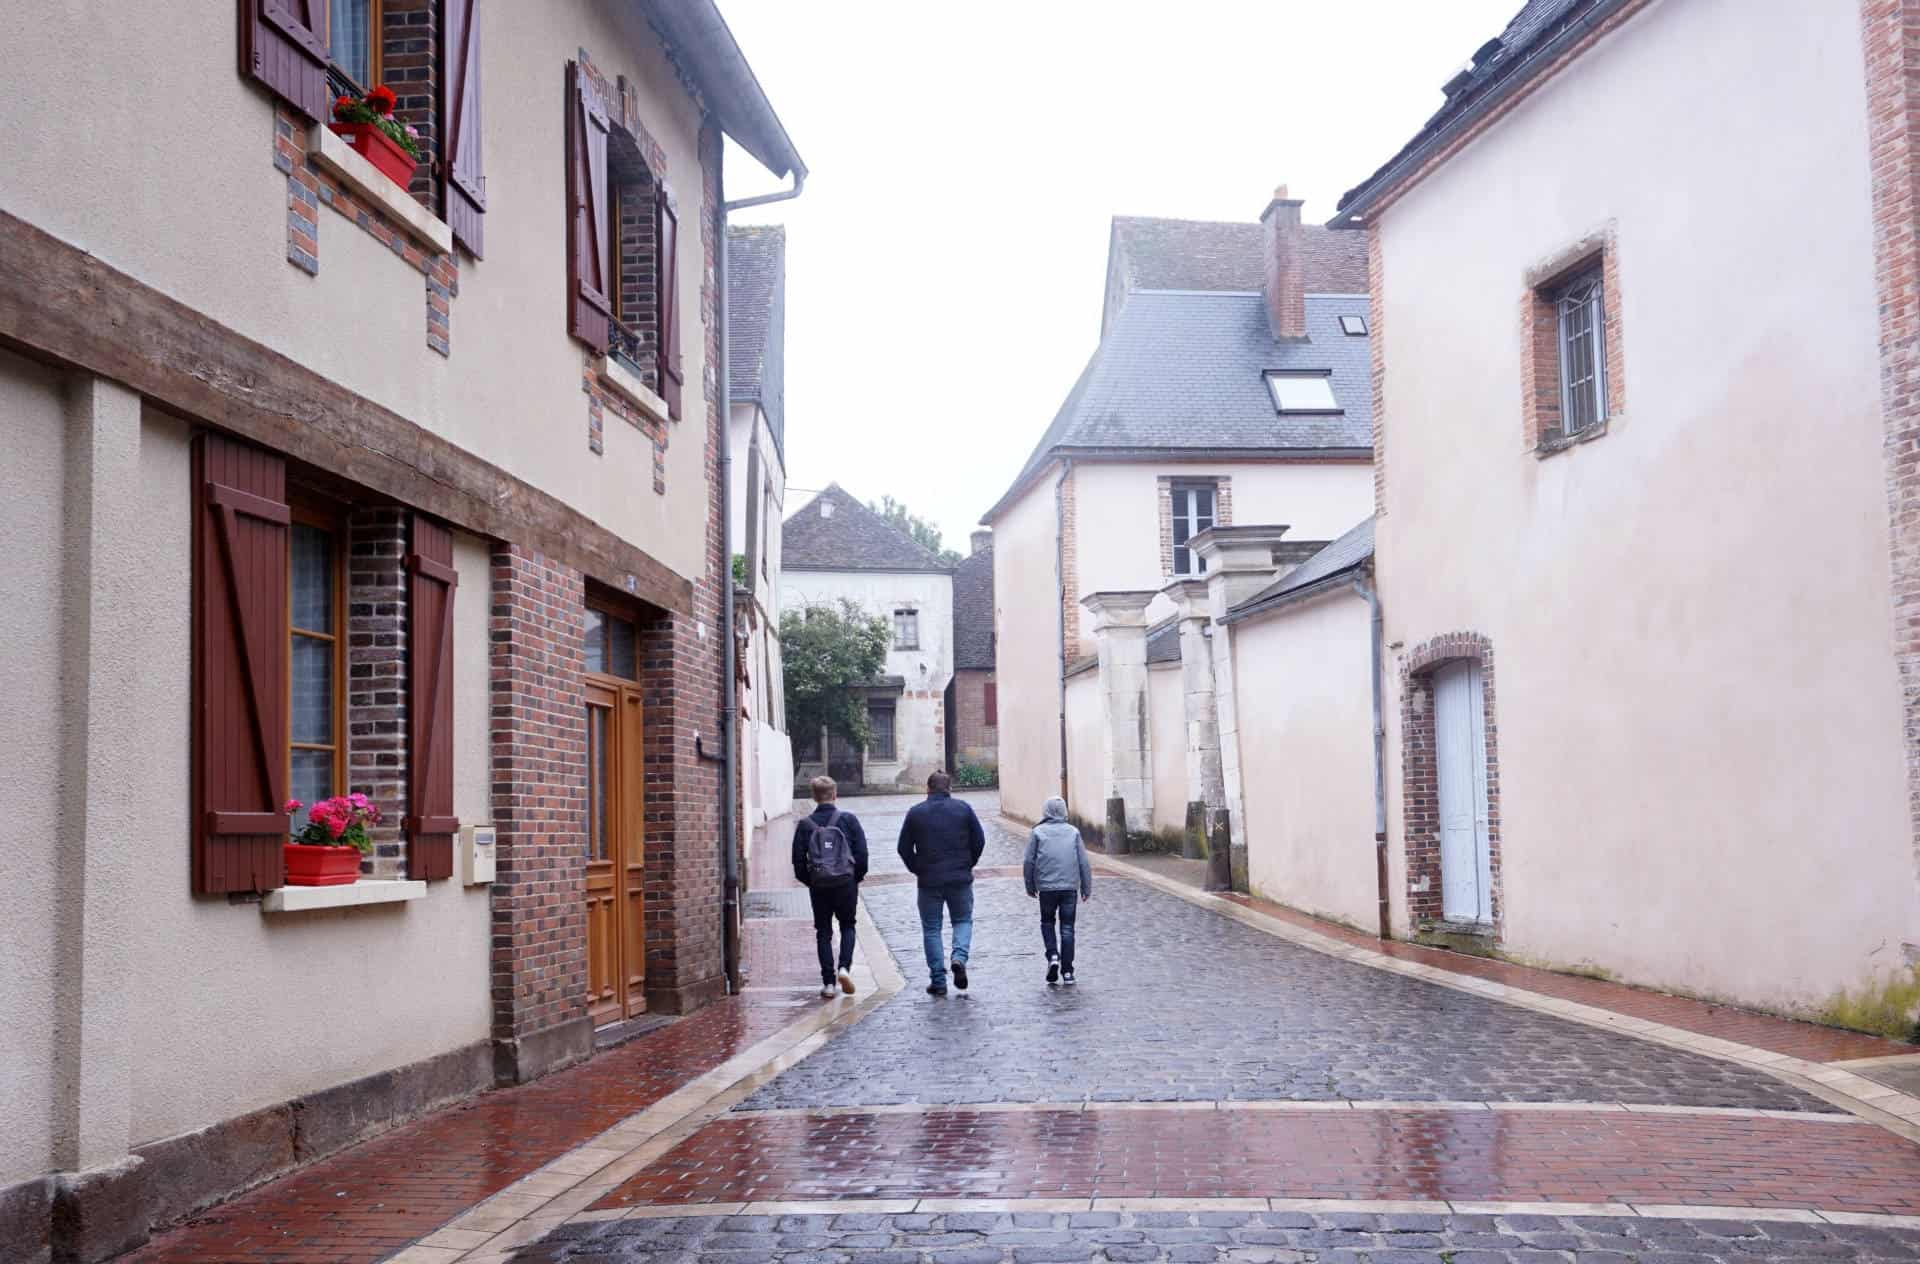 My Sunday Photo, Saint-Fargeau, A Quintessential French Village